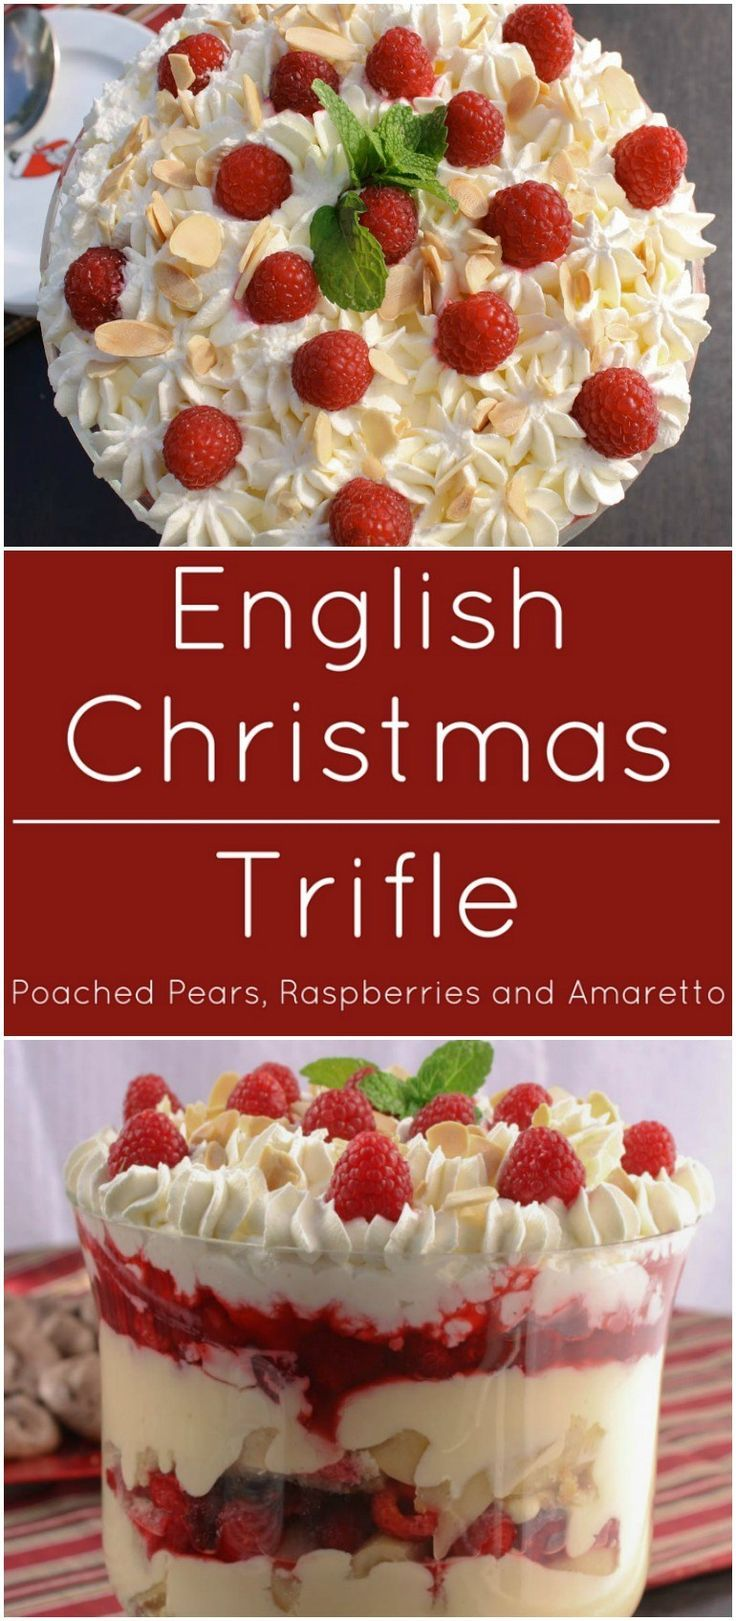 english christmas trifle with almond pound cake soaked with amaretto liqueur fresh raspberries and poached pears